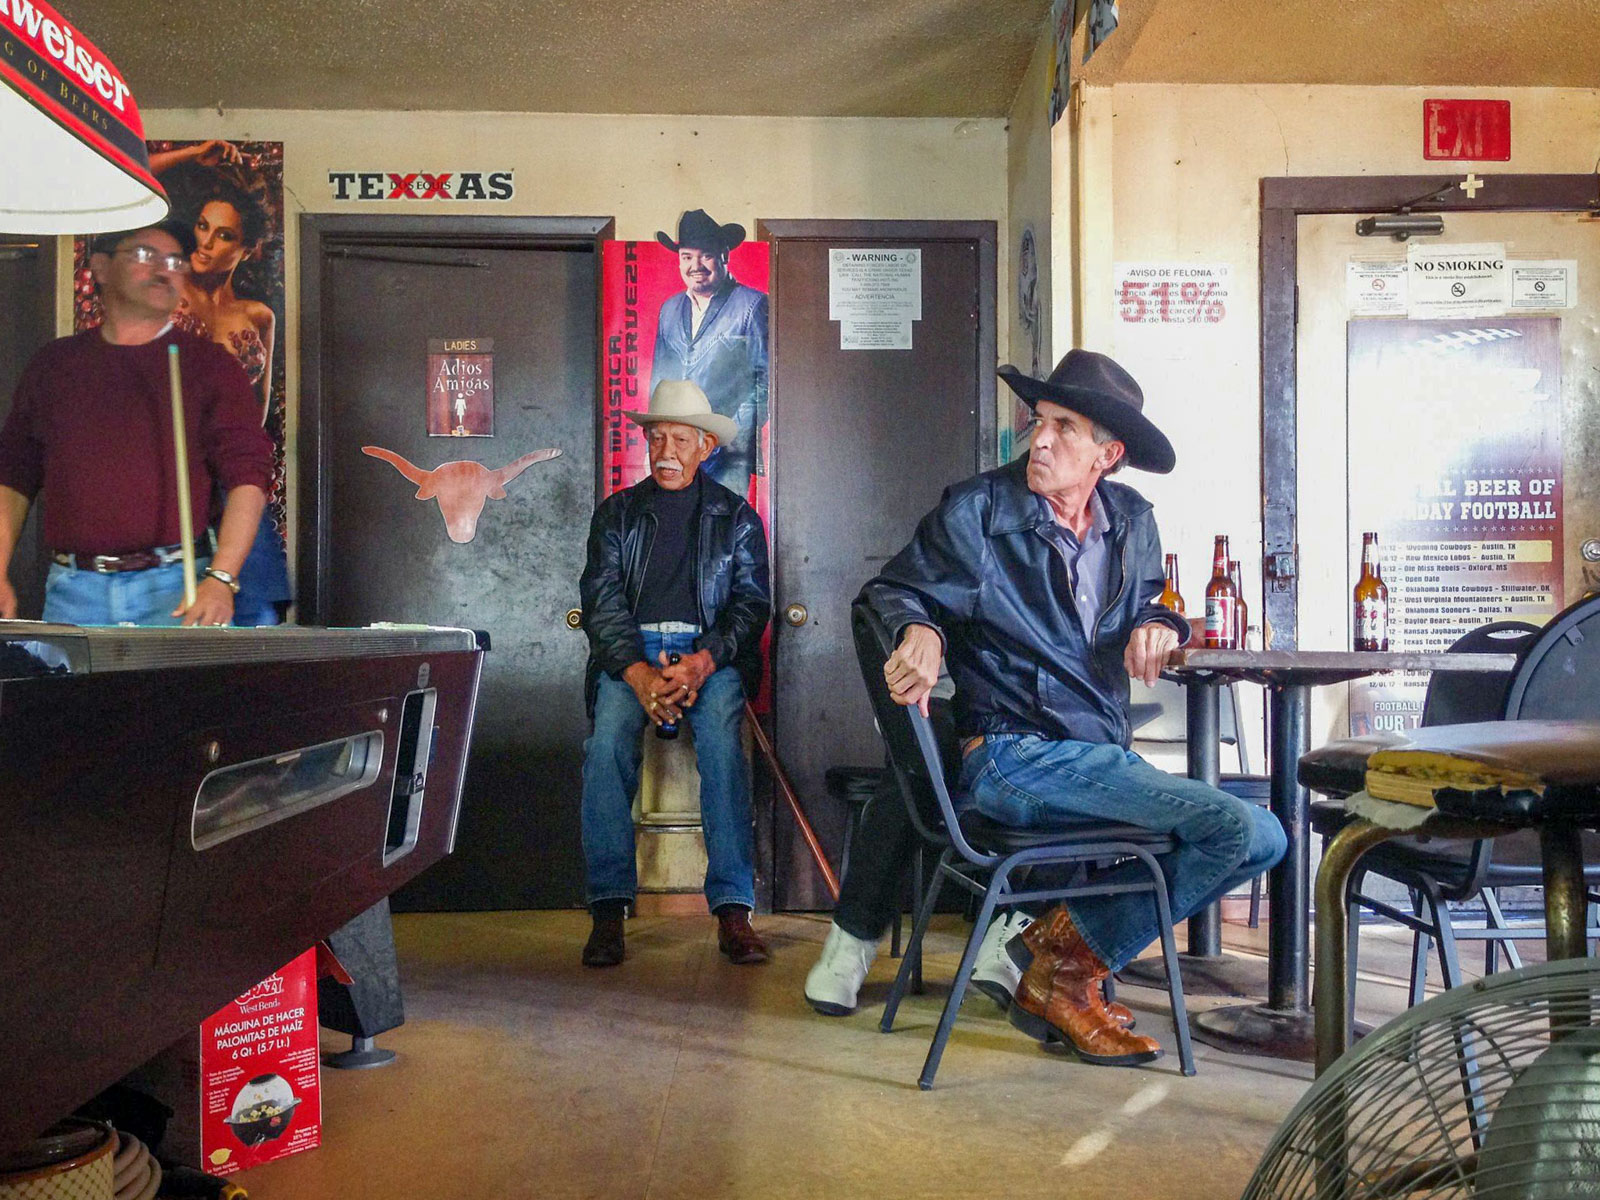 Cowboys relax and play pool in a bar in Austin, Texas, USA